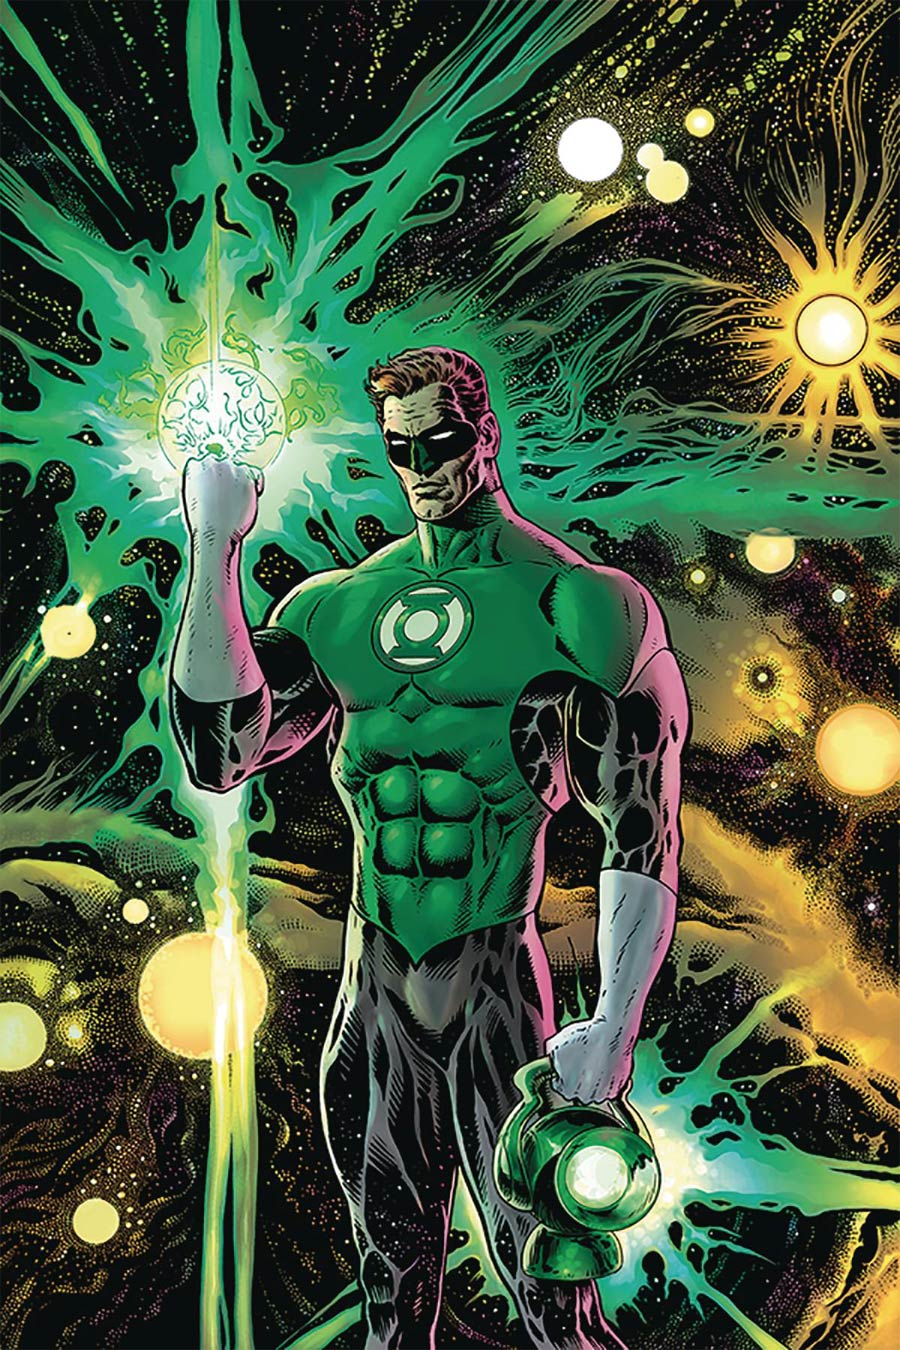 Green Lantern Vol 6 #1 Cover F DF Ultra-Limited Gold Signature Series Signed By Liam Sharp